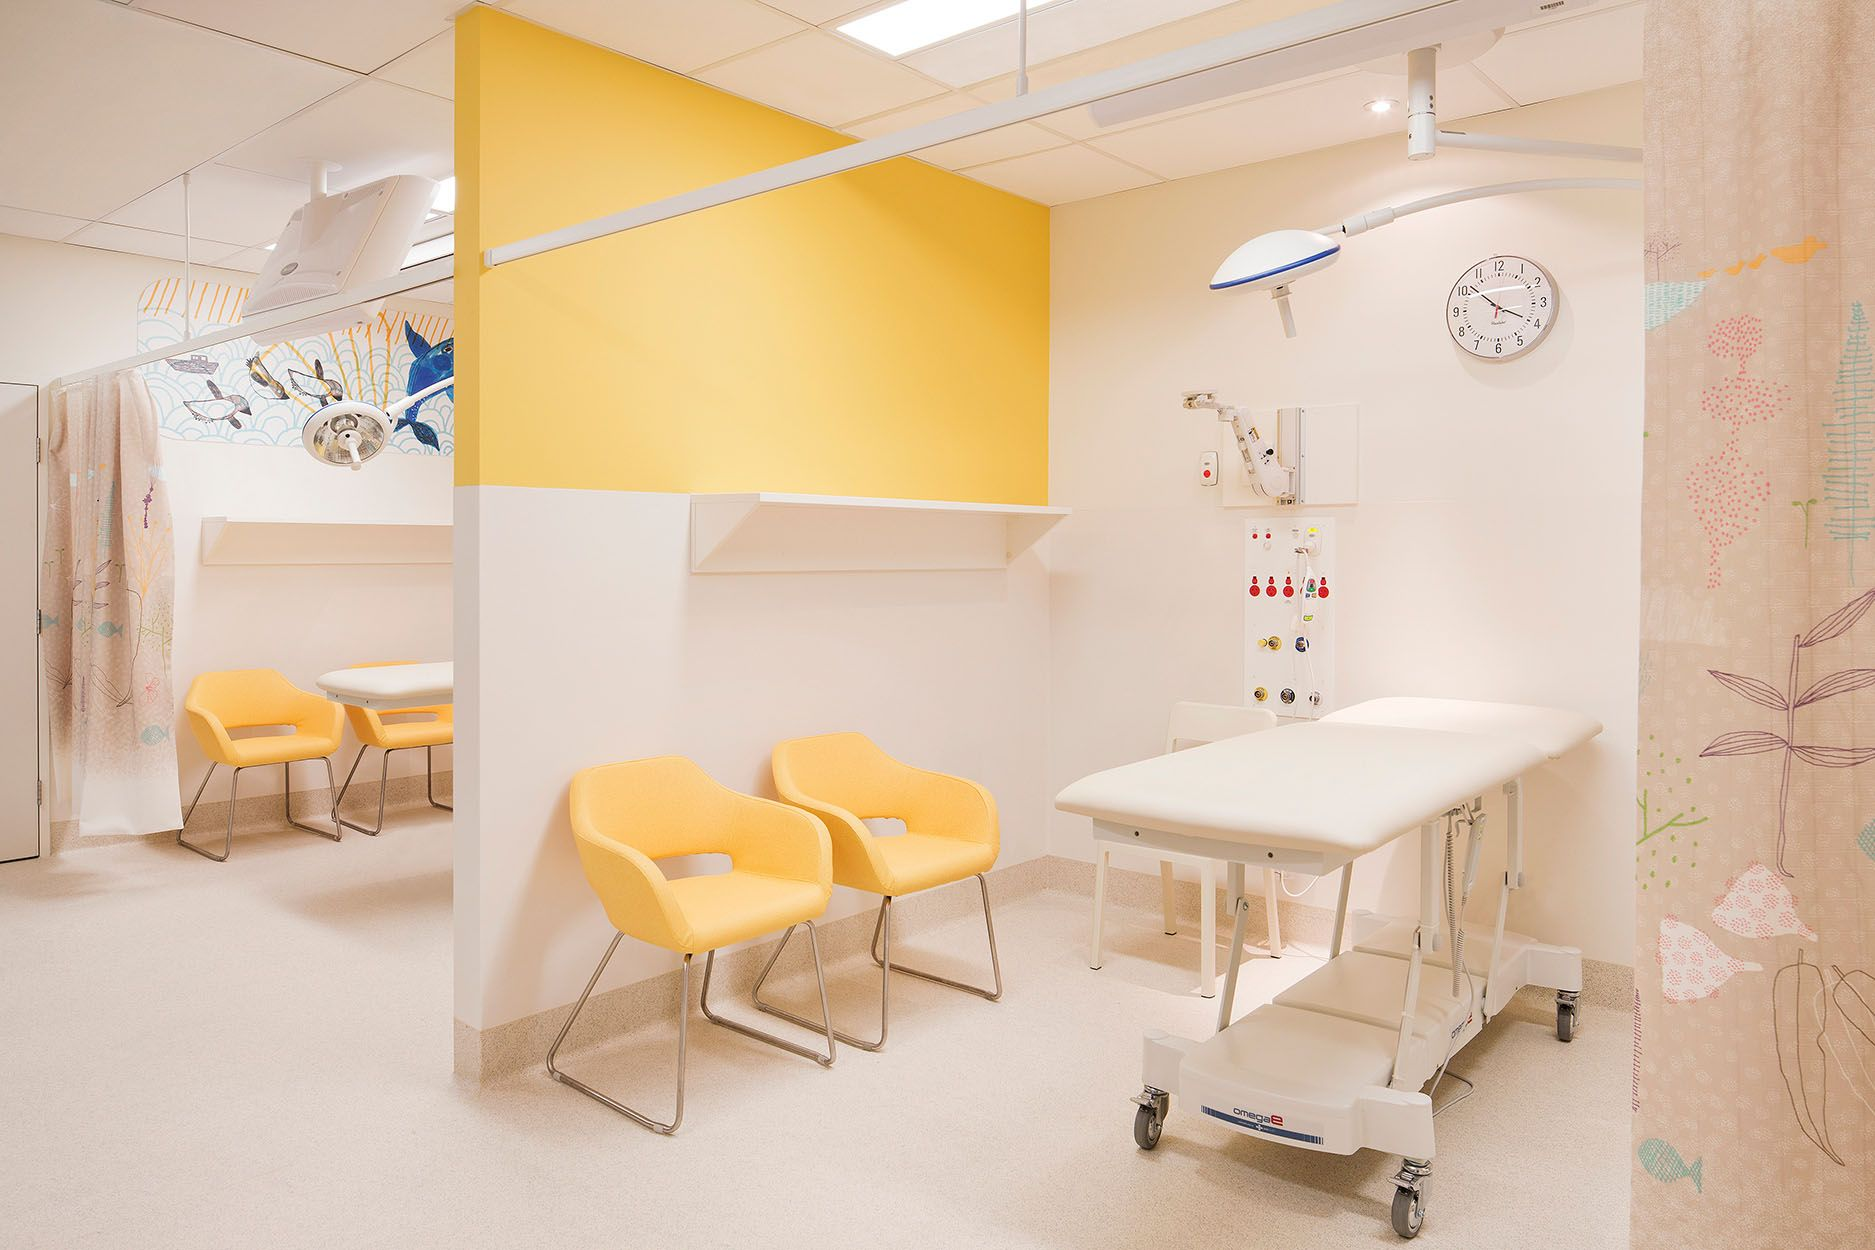 The New Royal Children's Hospital Clinical Planning